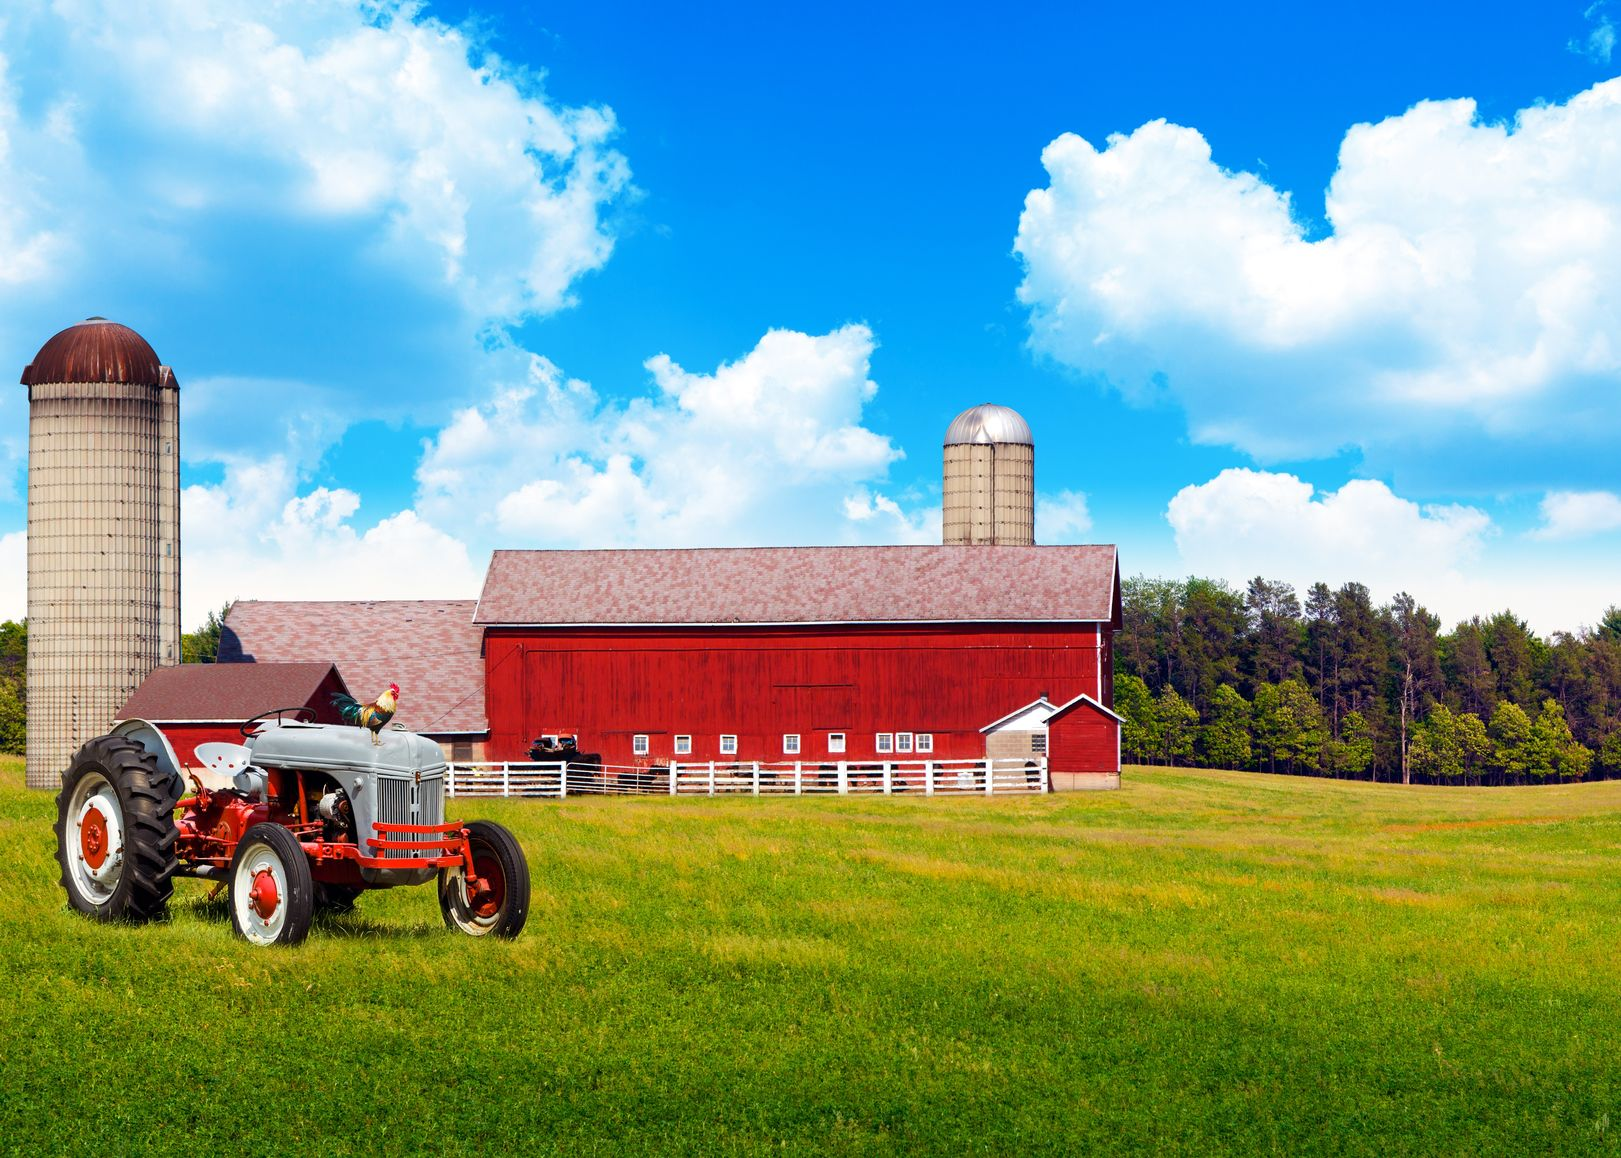 Redding, CA. Farm & Ranch Insurance